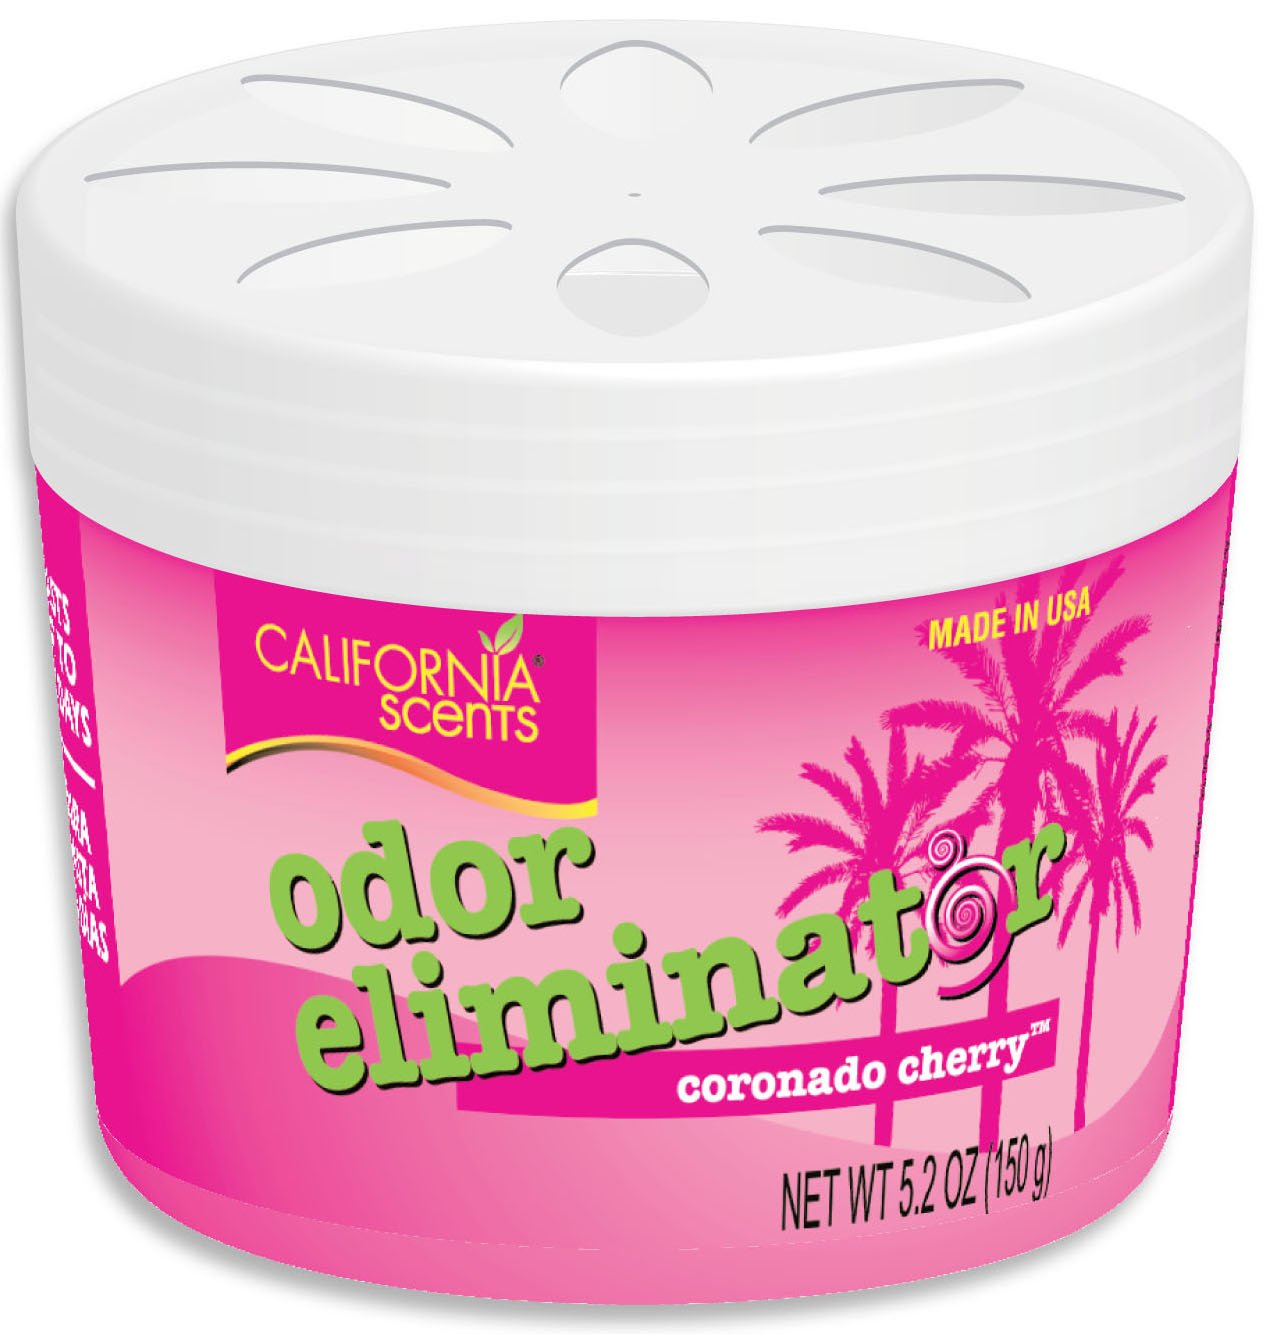 California Scents Odor Eliminator, Coronado Cherry, 5.2-Ounce Jars (Pack of 12)